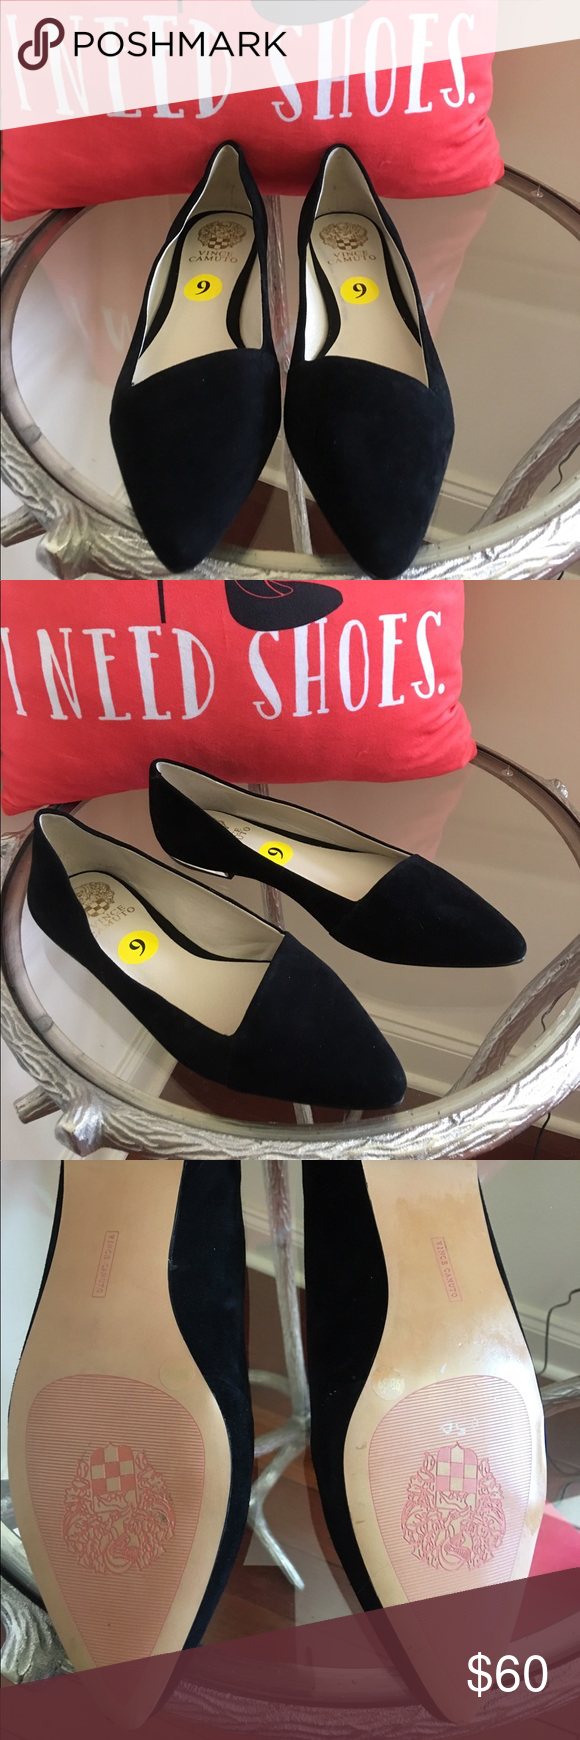 VINCE CAMUTO SUEDE FLATS NEVER WORN VINCE CAMUTO BLACK SUEDE FLATS WITH GOLD TRIM ON HEELS!  THESE FLATS ARE STUNNING! Vince Camuto Shoes Flats & Loafers